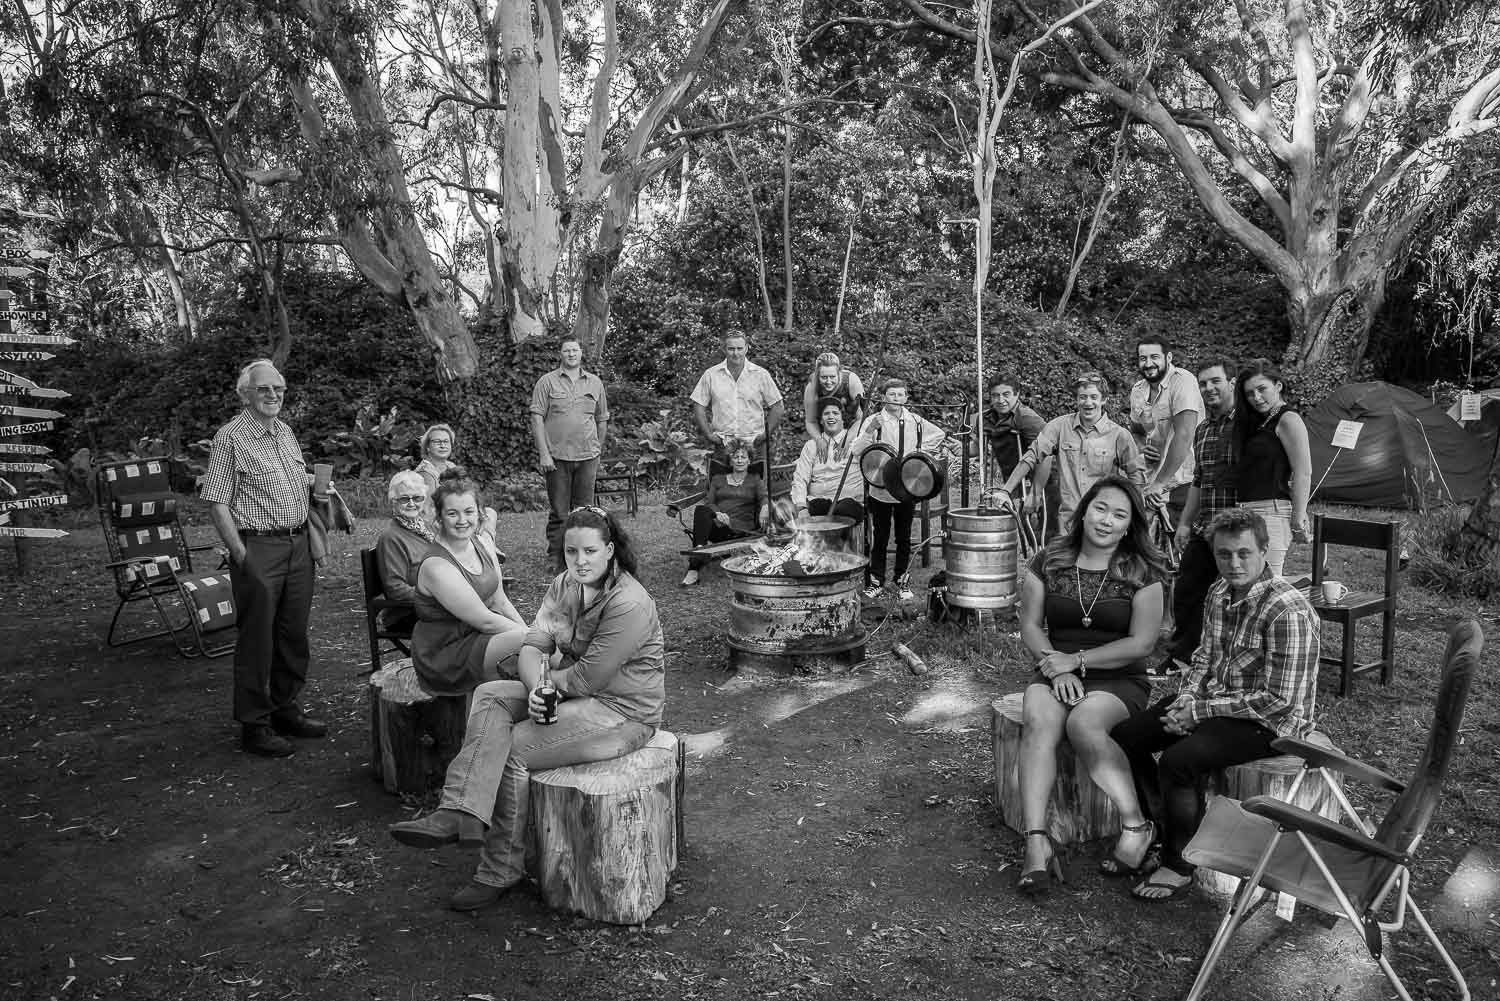 Relaxed Family Group Portrait at Bush Camp